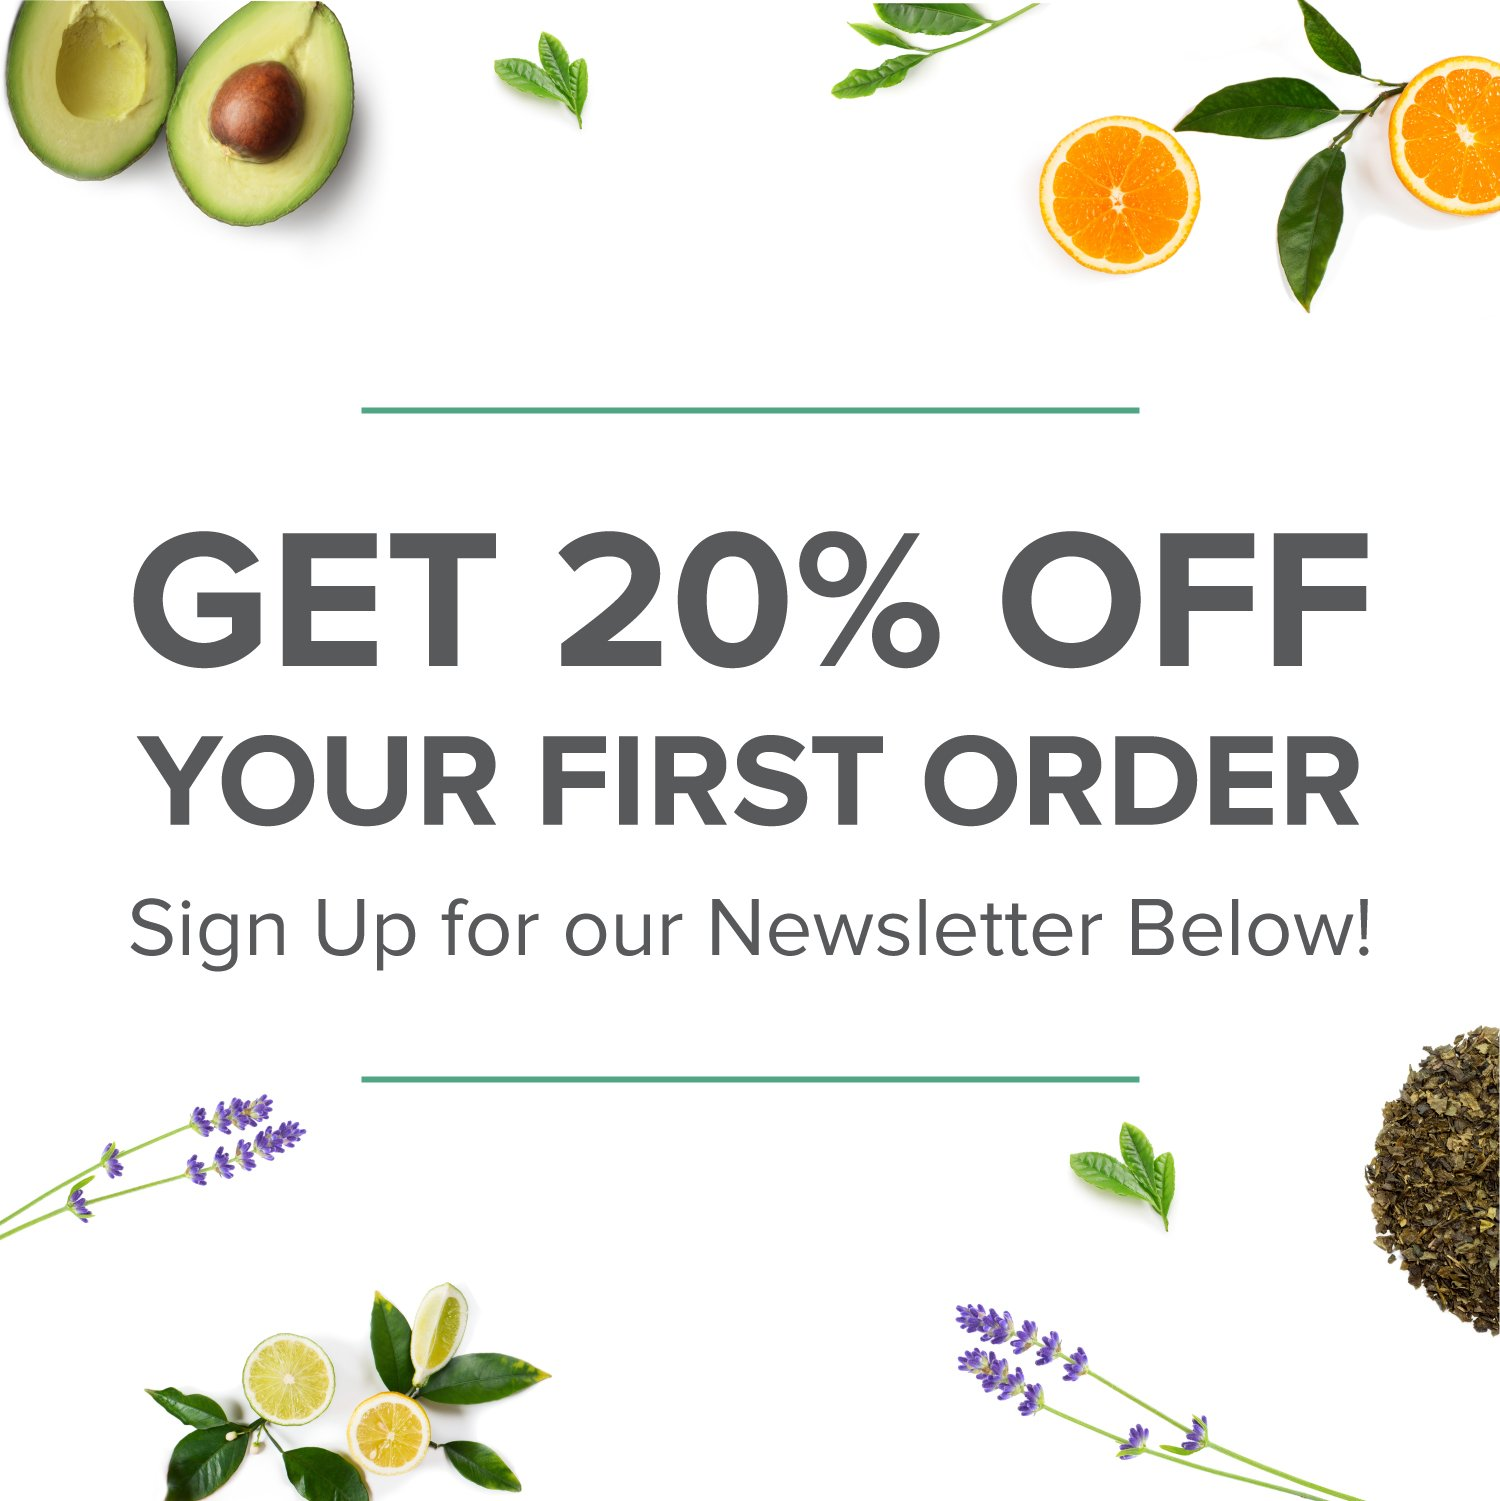 InstaNatural Coupon Code - Redeem Offer